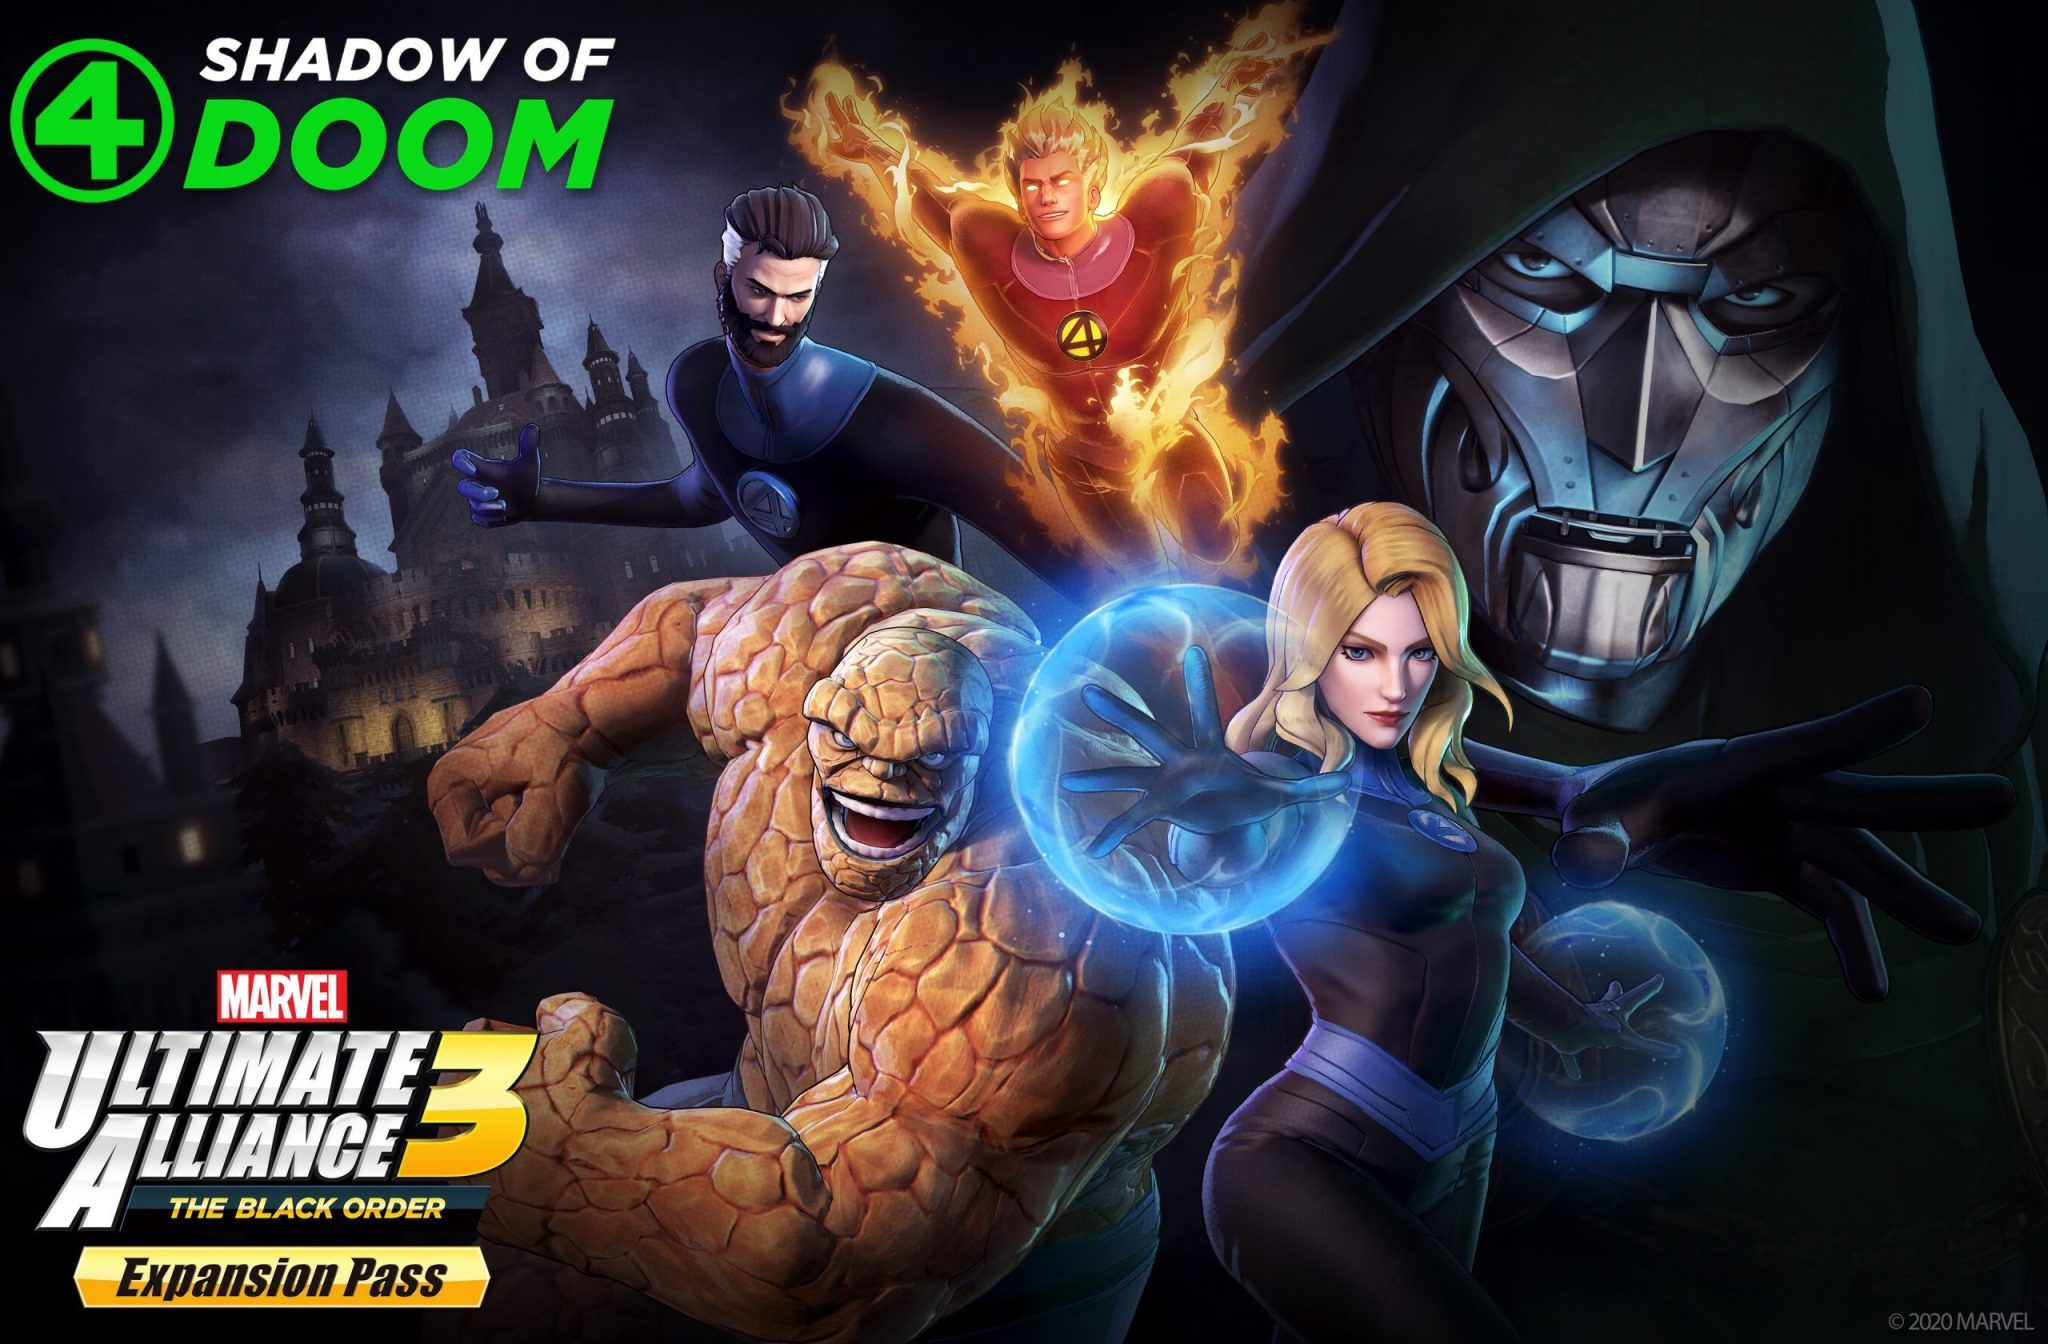 発売元:任天堂株式会社【MARVEL ULTIMATE ALLIANCE 3: The Black Order DLC3「Fantastic Four: Shadow of Doom」】